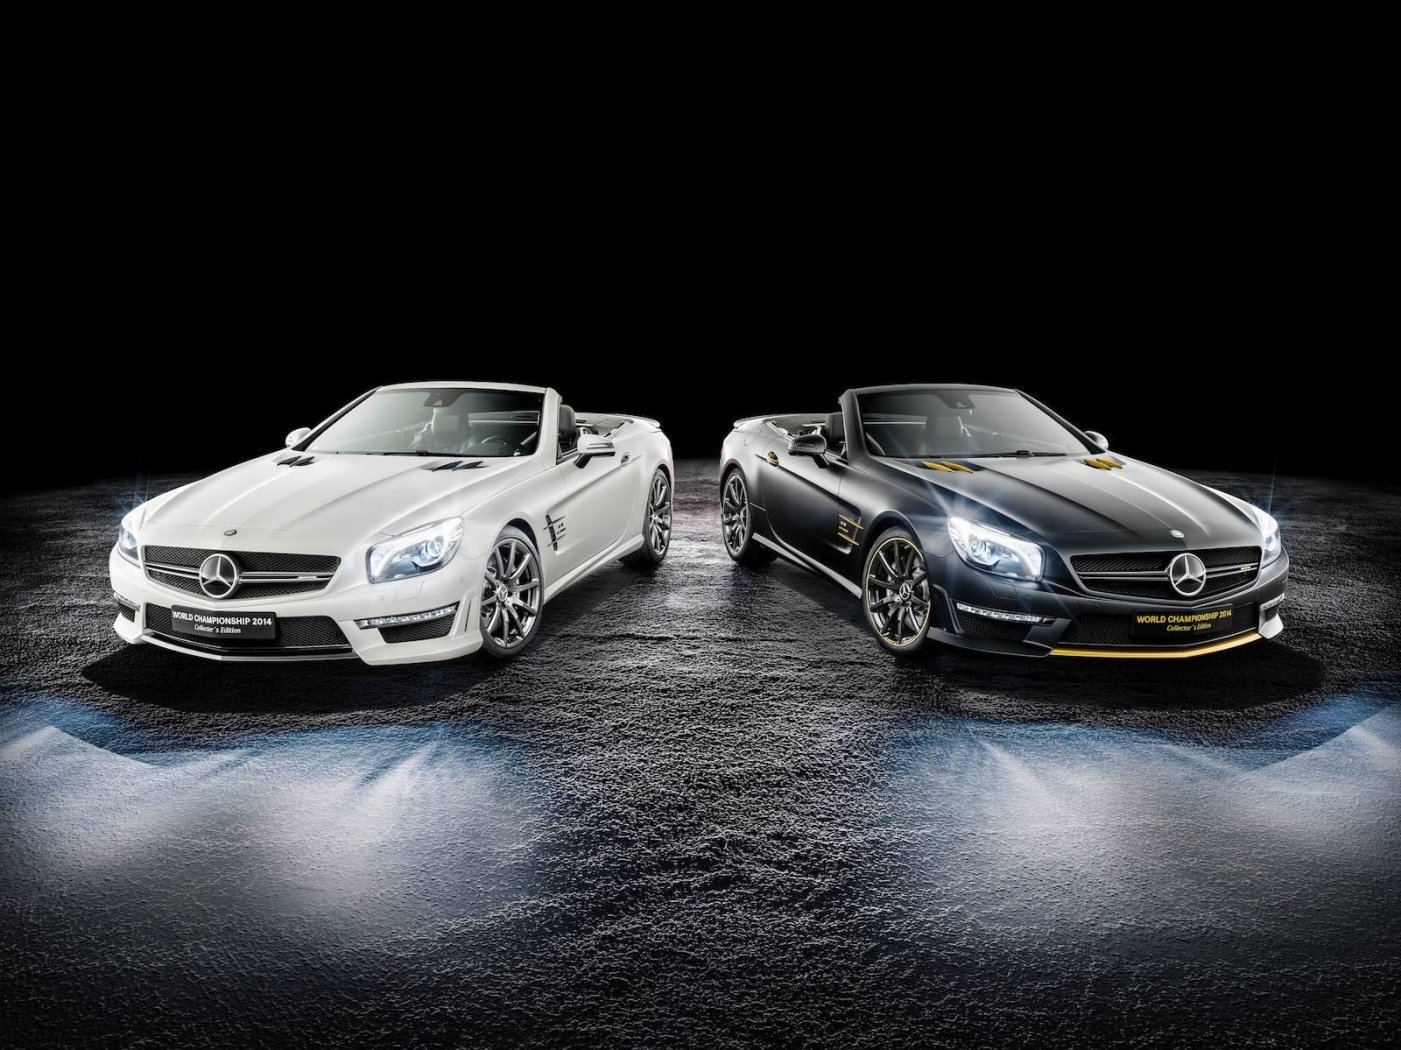 Mercedes-Benz-SL-63-AMG-World-Champion-2014-1.jpg